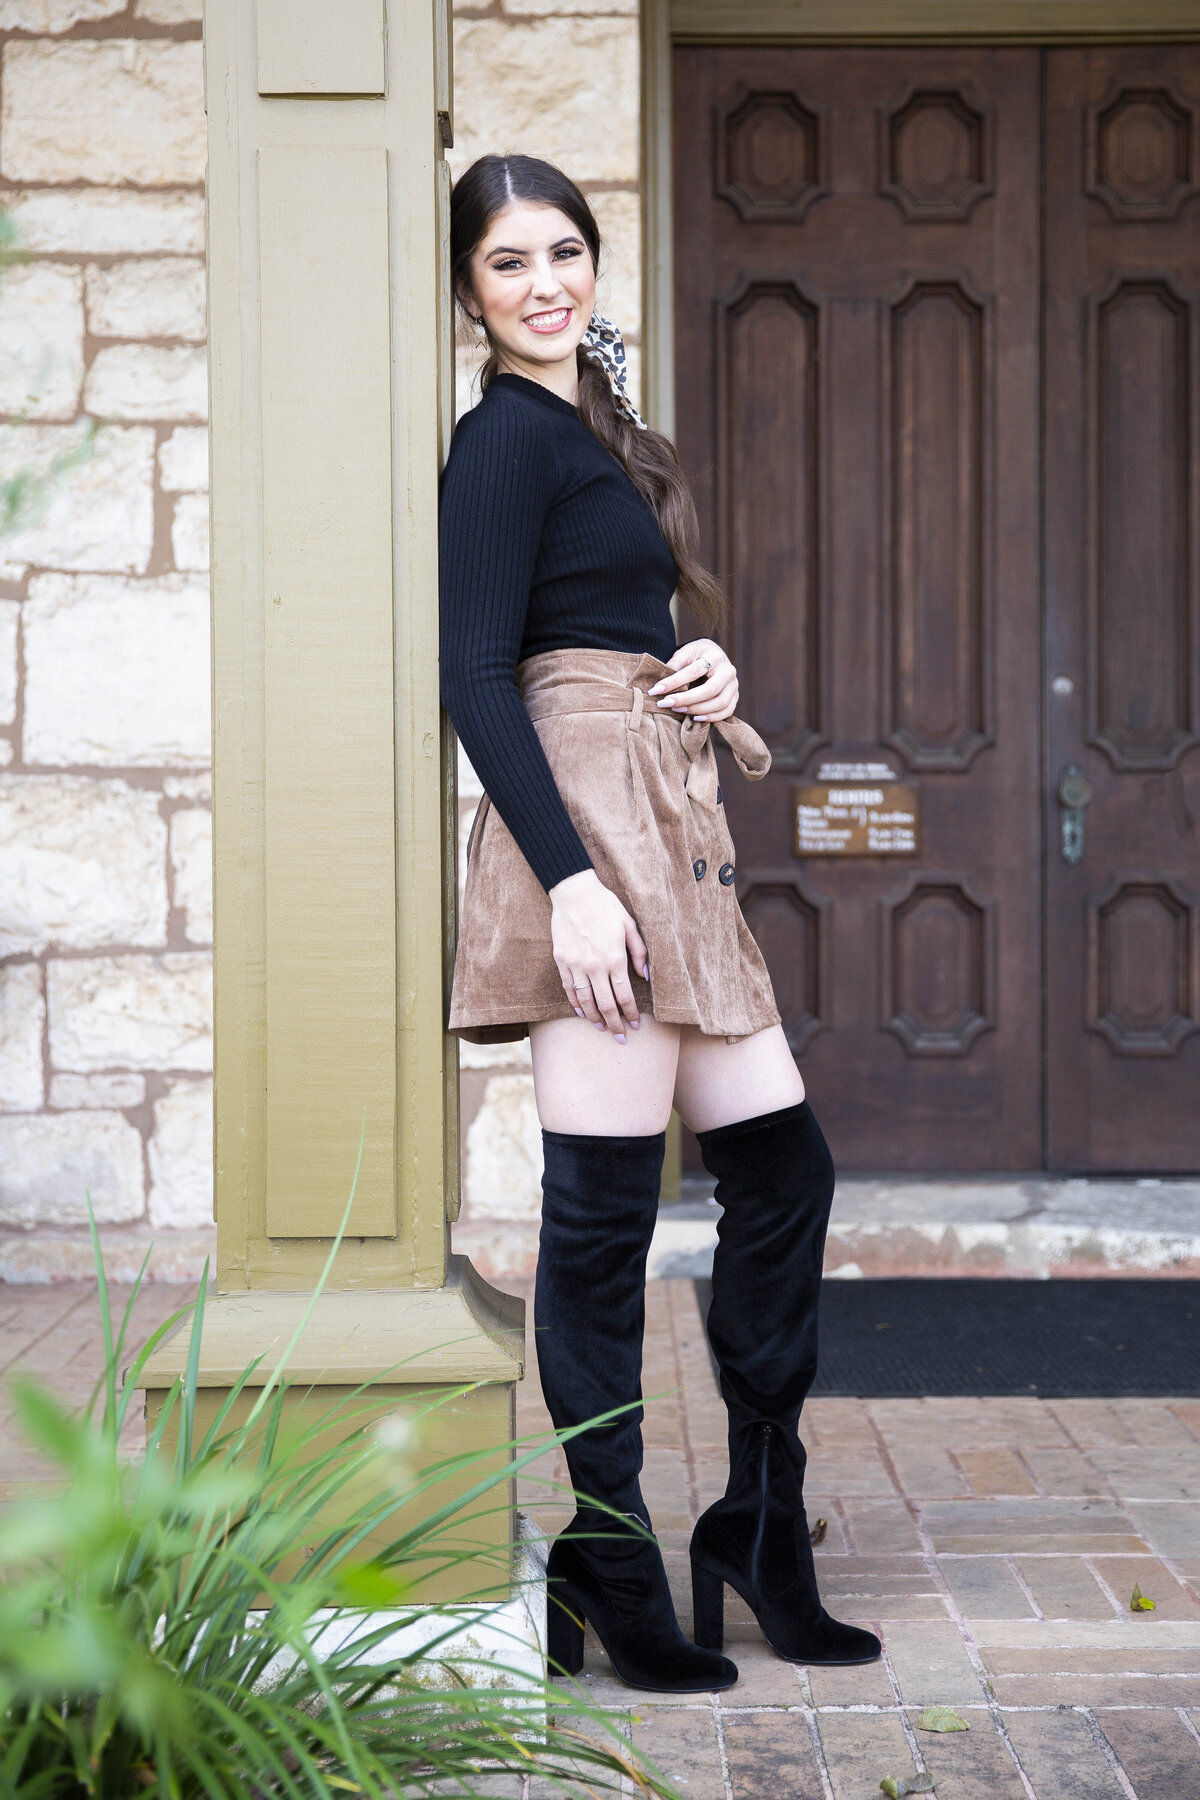 san-antonio-senior-photography-nikki-ann-image-9